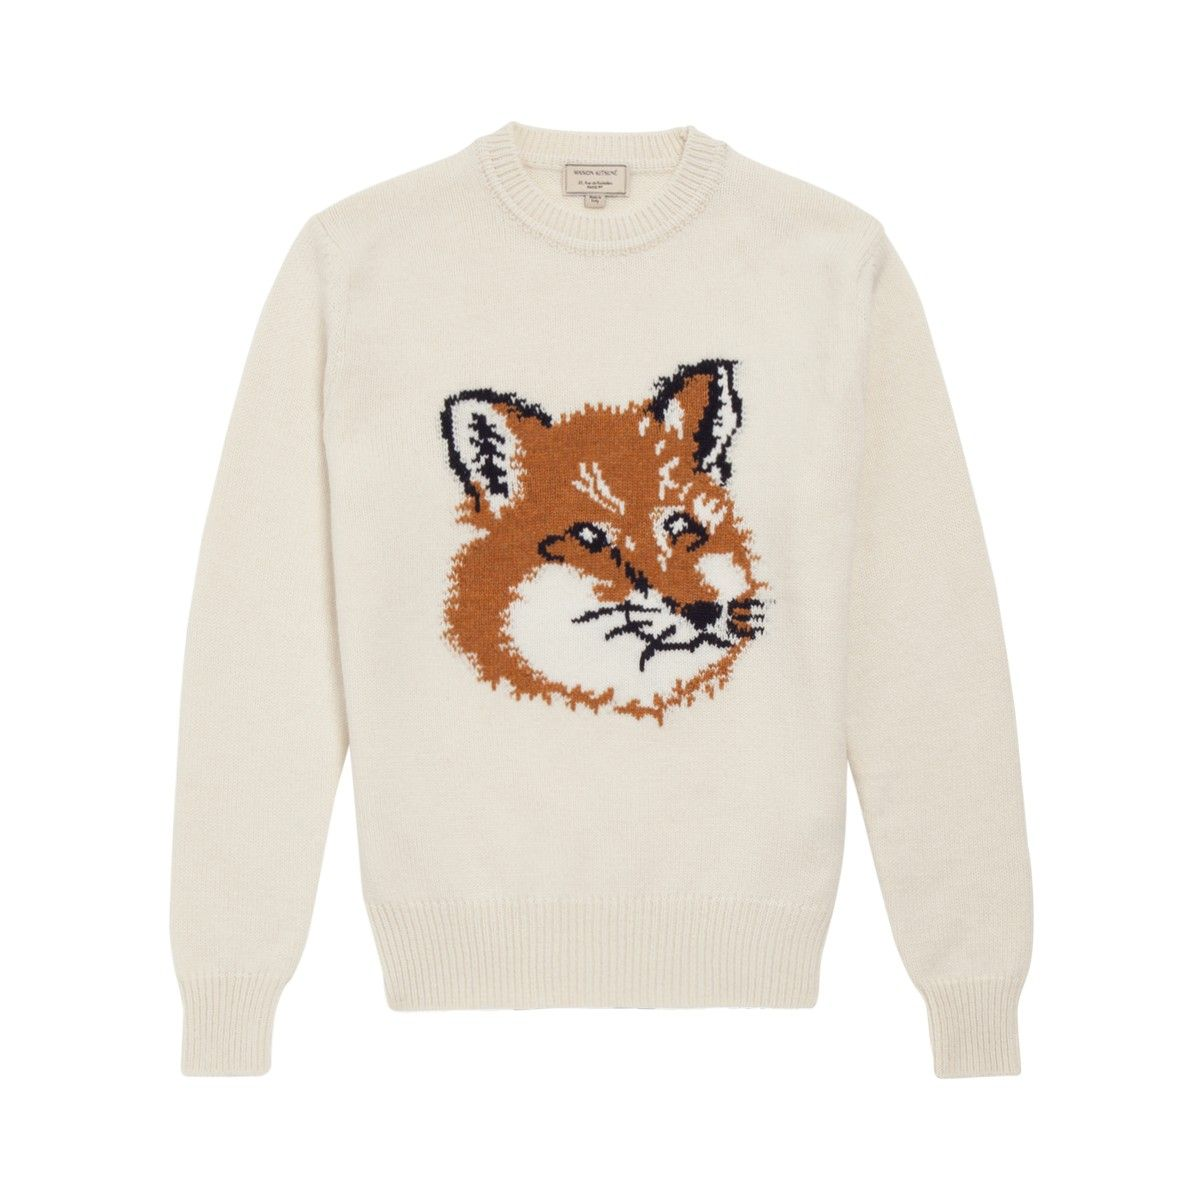 Still a sucker for foxes. 200 Euros on sale is still too pricey, Maison Kitsune.